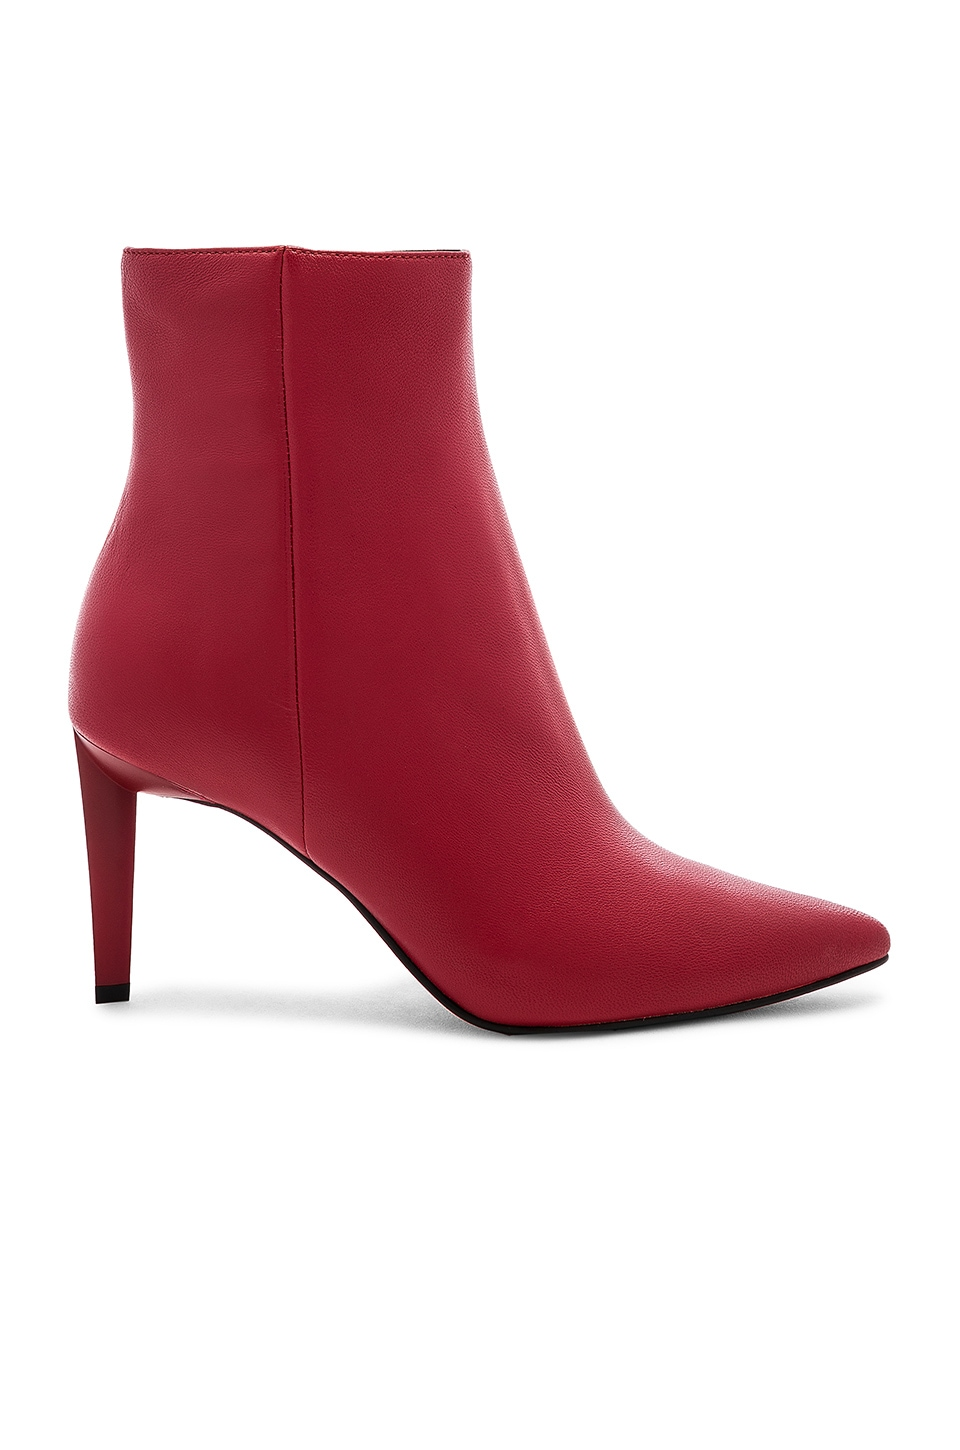 KENDALL + KYLIE Zoe Boot in Candy Red Sheep Leather